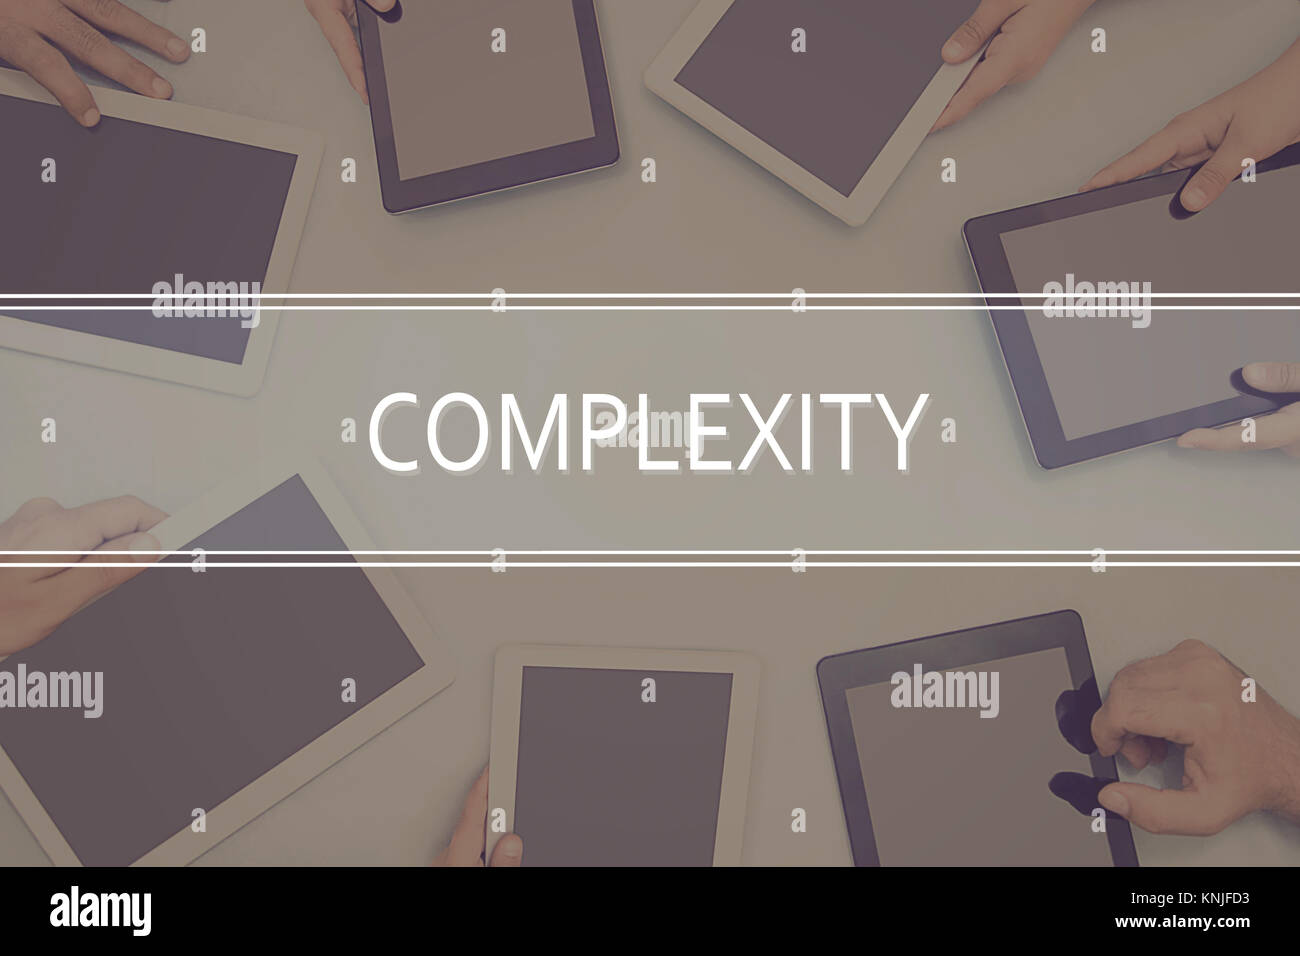 COMPLEXITY CONCEPT Business Concept. - Stock Image